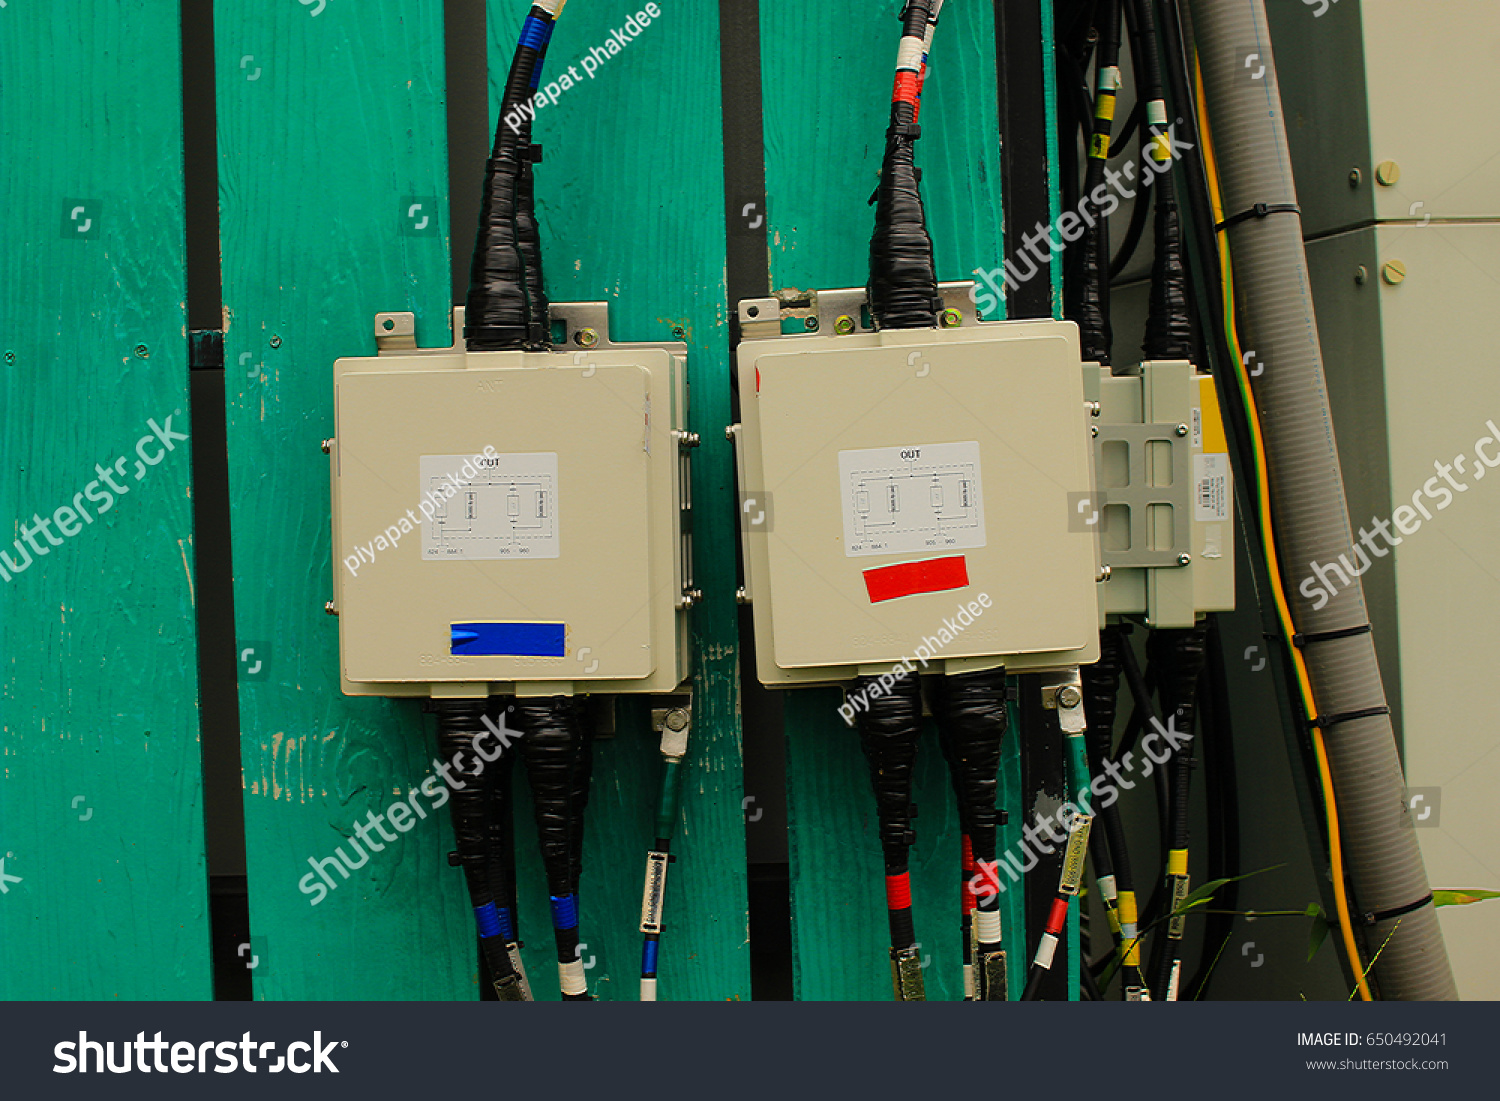 Fuse Box Safety Wiring Library Rcd Circuit Breaker Together With Switch Stock Photos Of